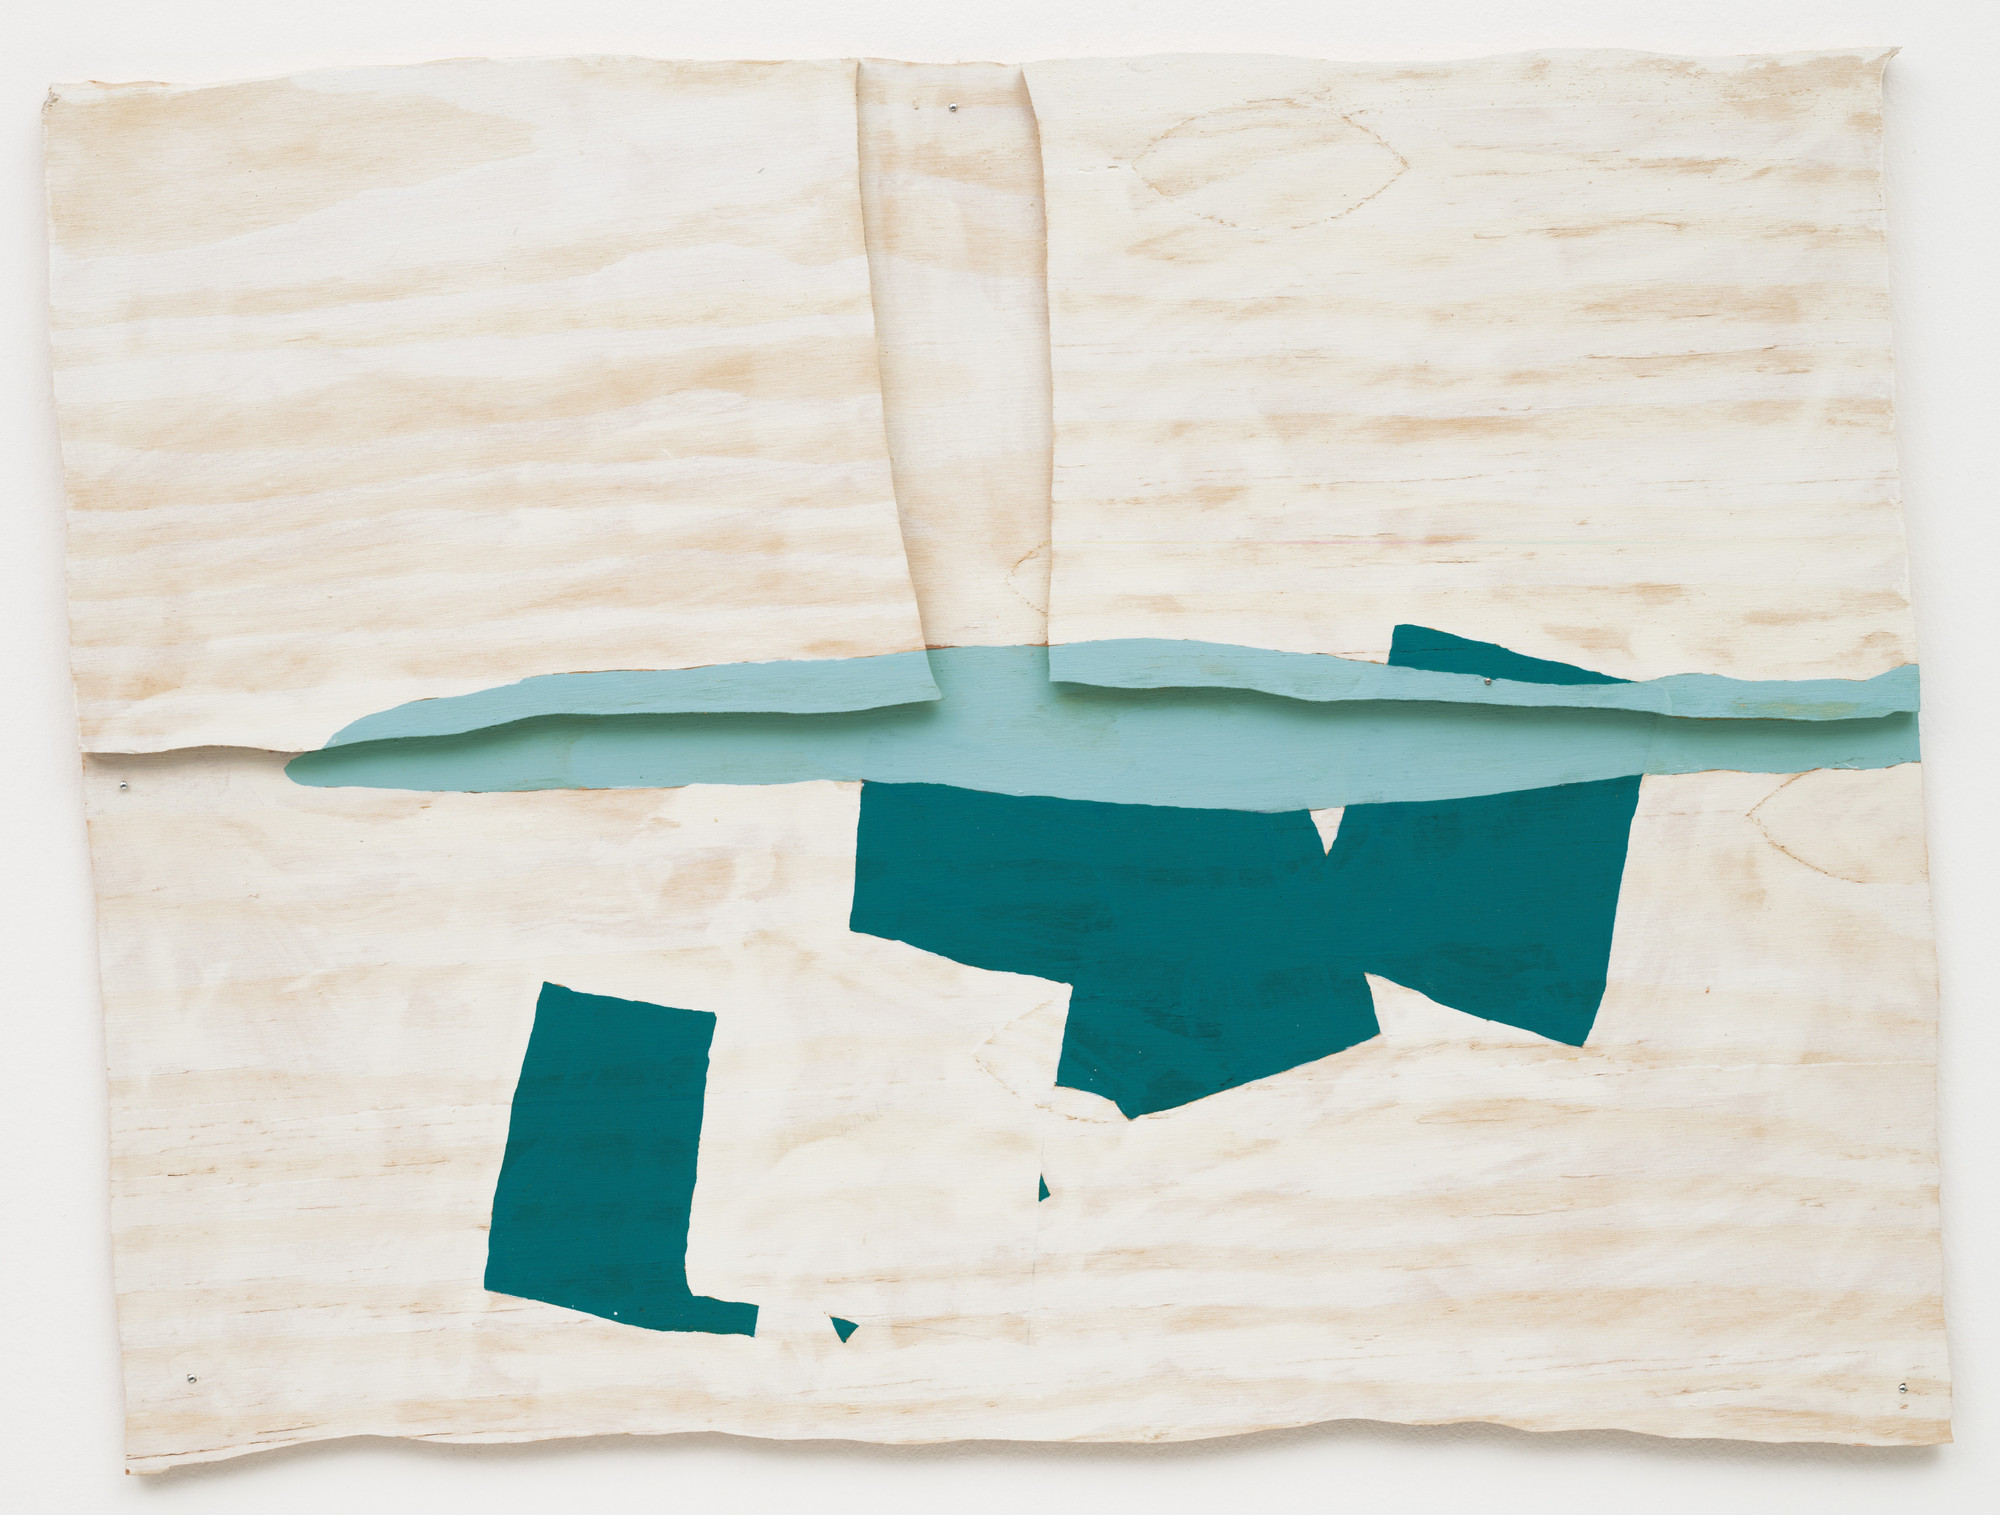 Richard Tuttle. New Mexico, New York, D, #13. 1998